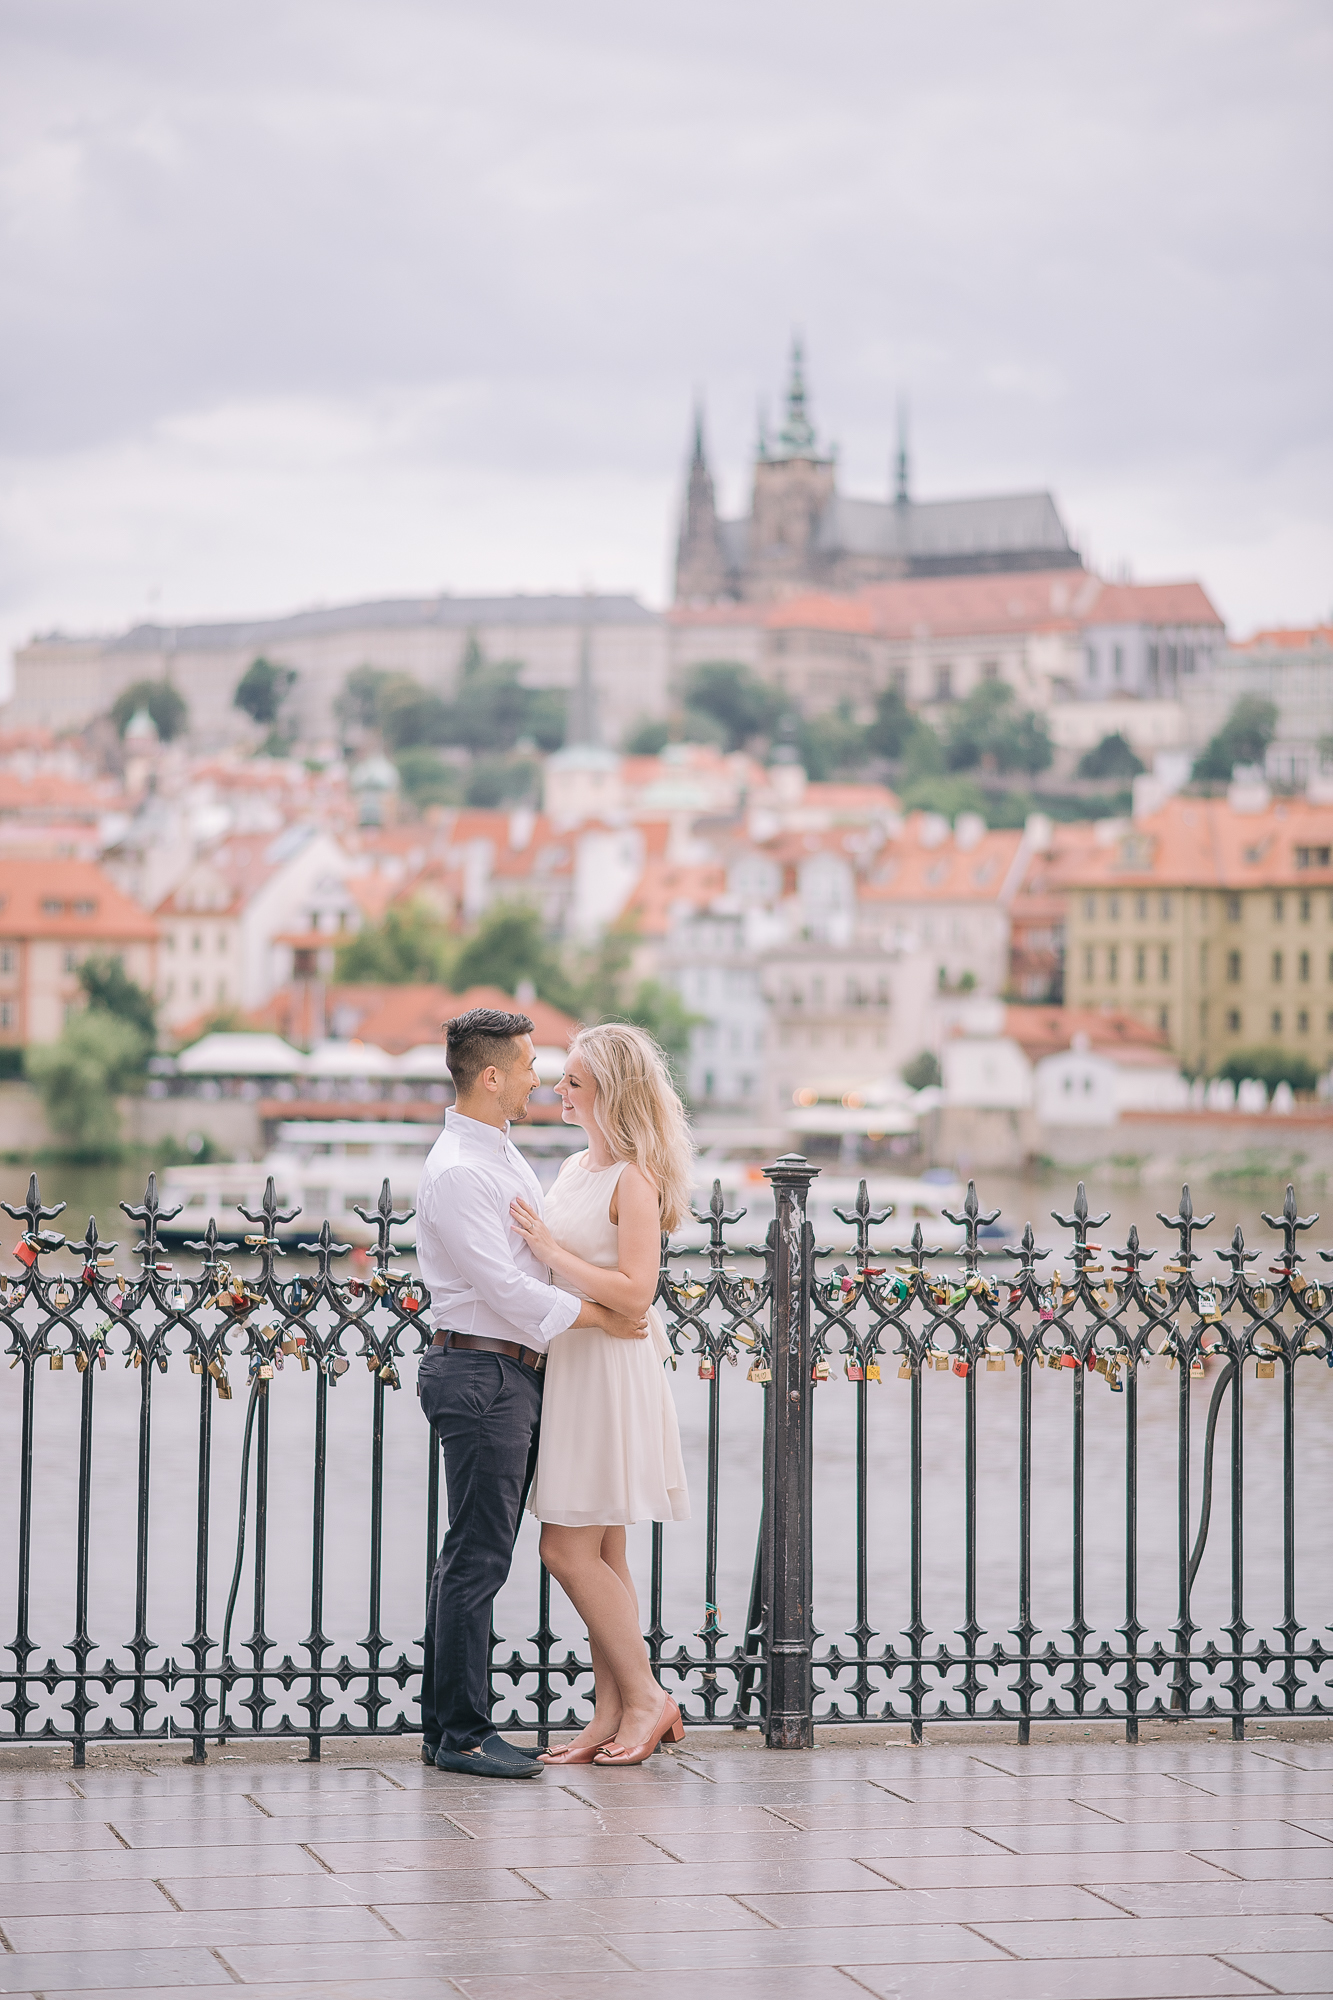 Prague-Wedding-Photography-Matej-Trasak-Engagement-AJ-119.jpg